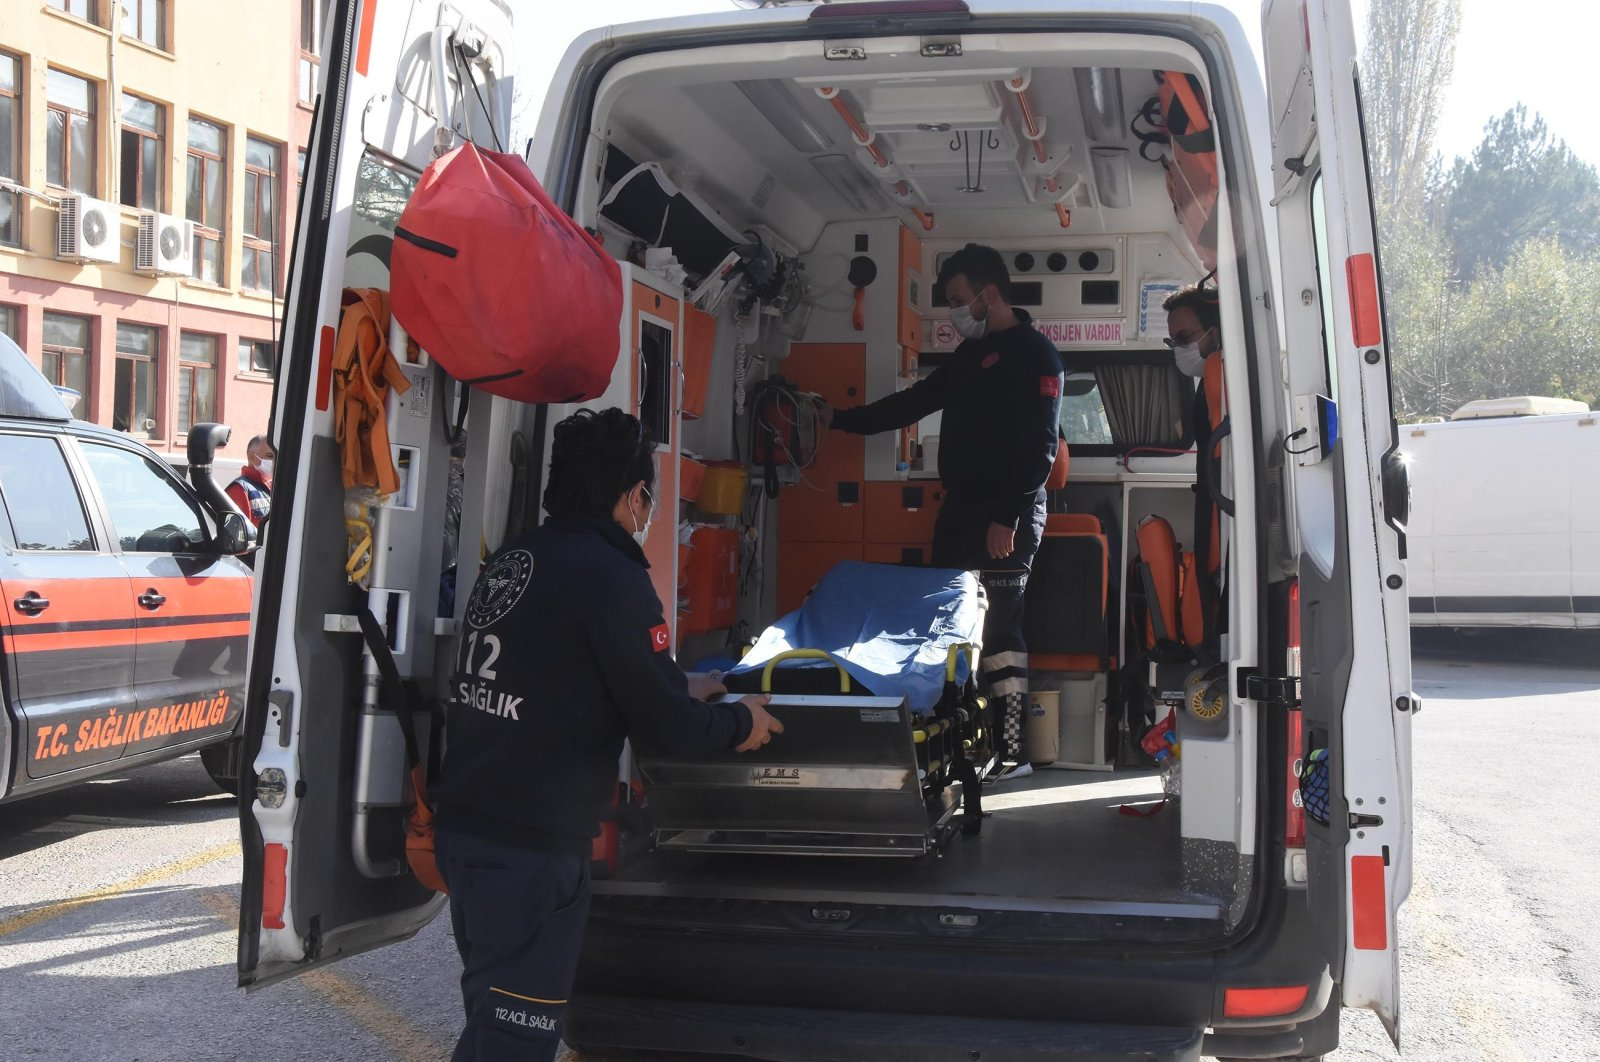 This file photo dated Nov. 14, 2020, shows the first responders who rushed to the aid of 4-year-old Ayda Gezgin after she was pulled from rubble in Izmir 91 hours after the devastating earthquake on Oct. 30, 2020, inside their ambulance in Kütahya, central Turkey. (DHA Photo)